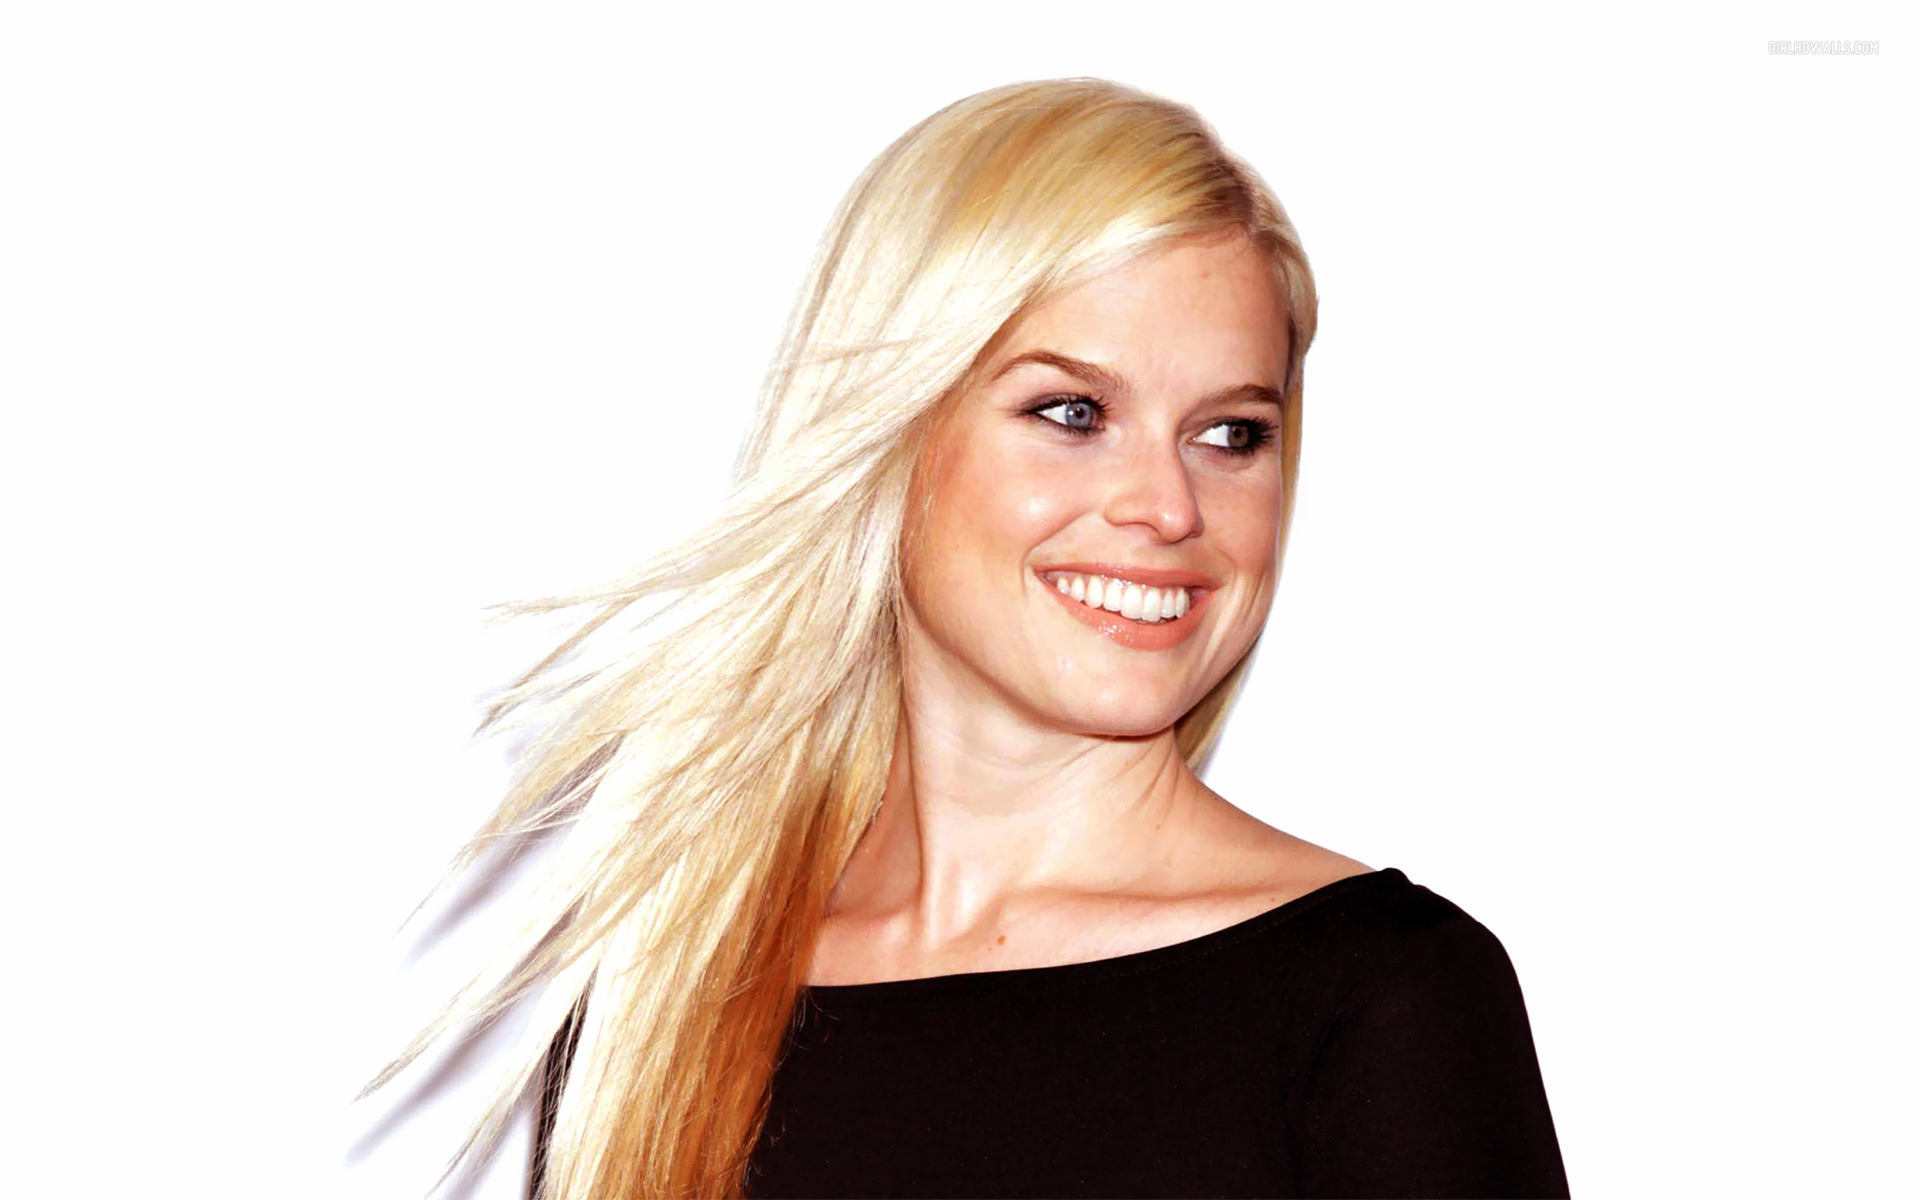 Alice Eve Wallpapers High Resolution and Quality Download